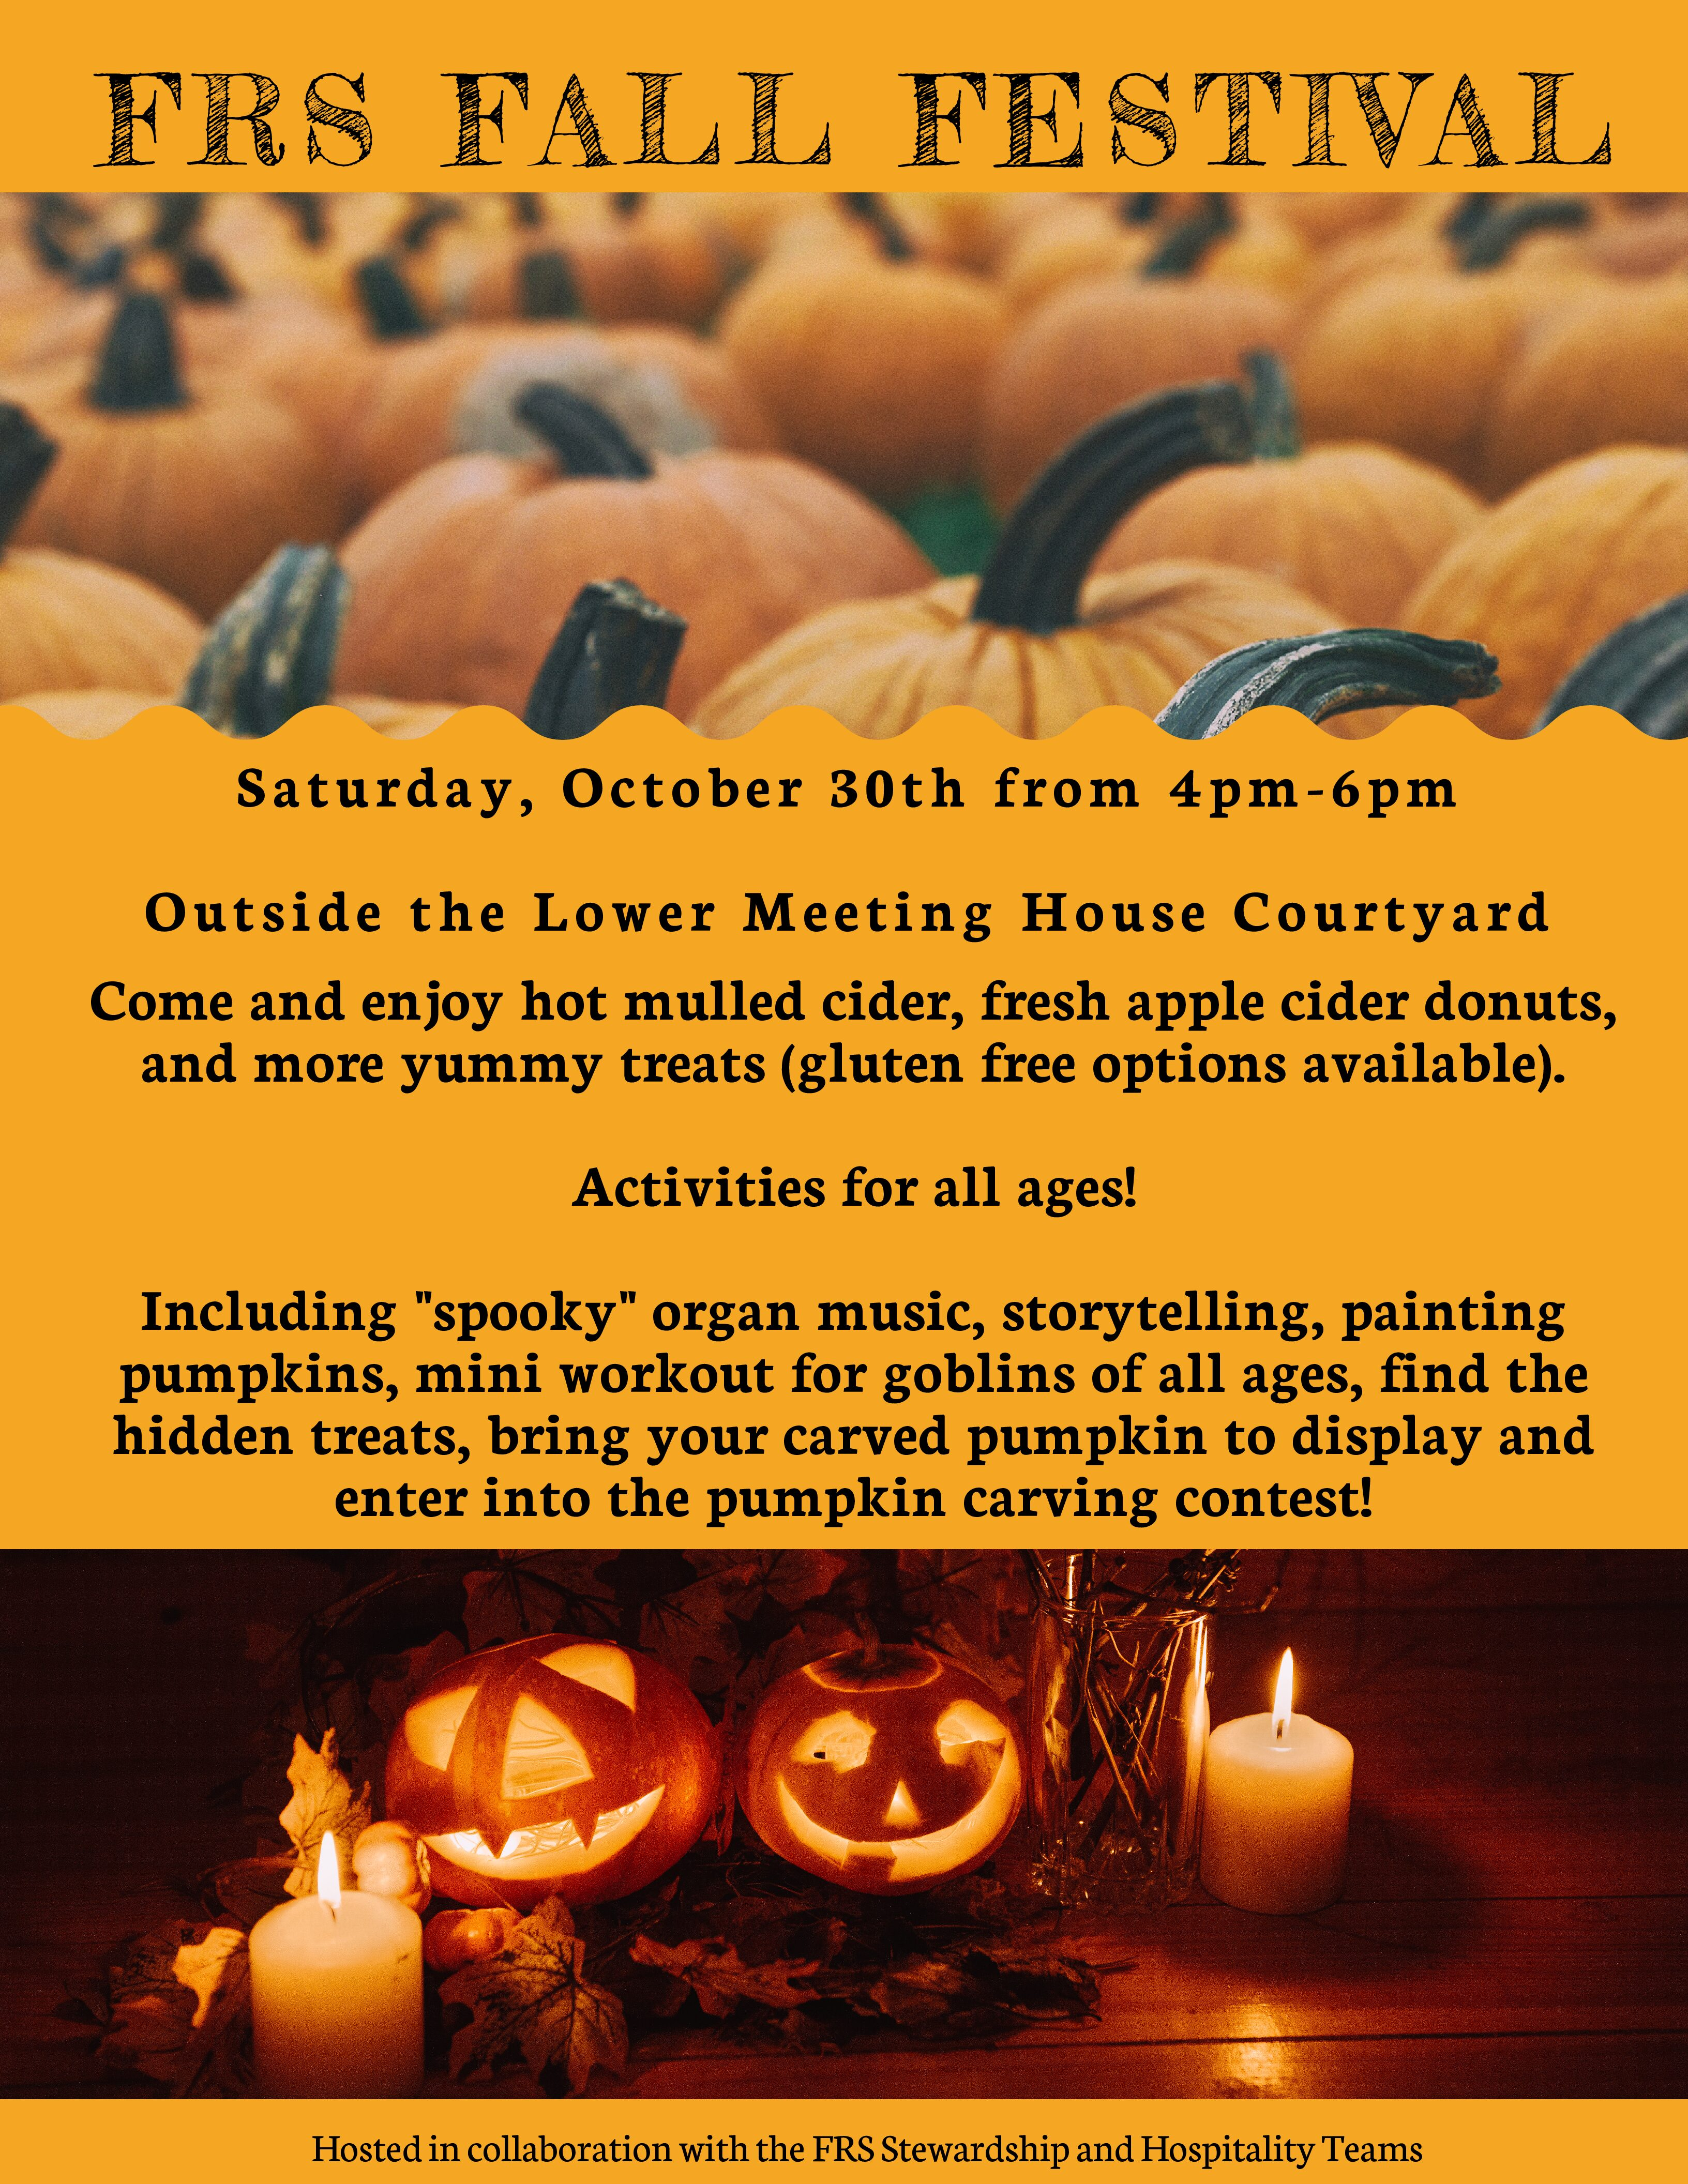 FRS Fall Festival, Saturday, October 30 from 4-6pm